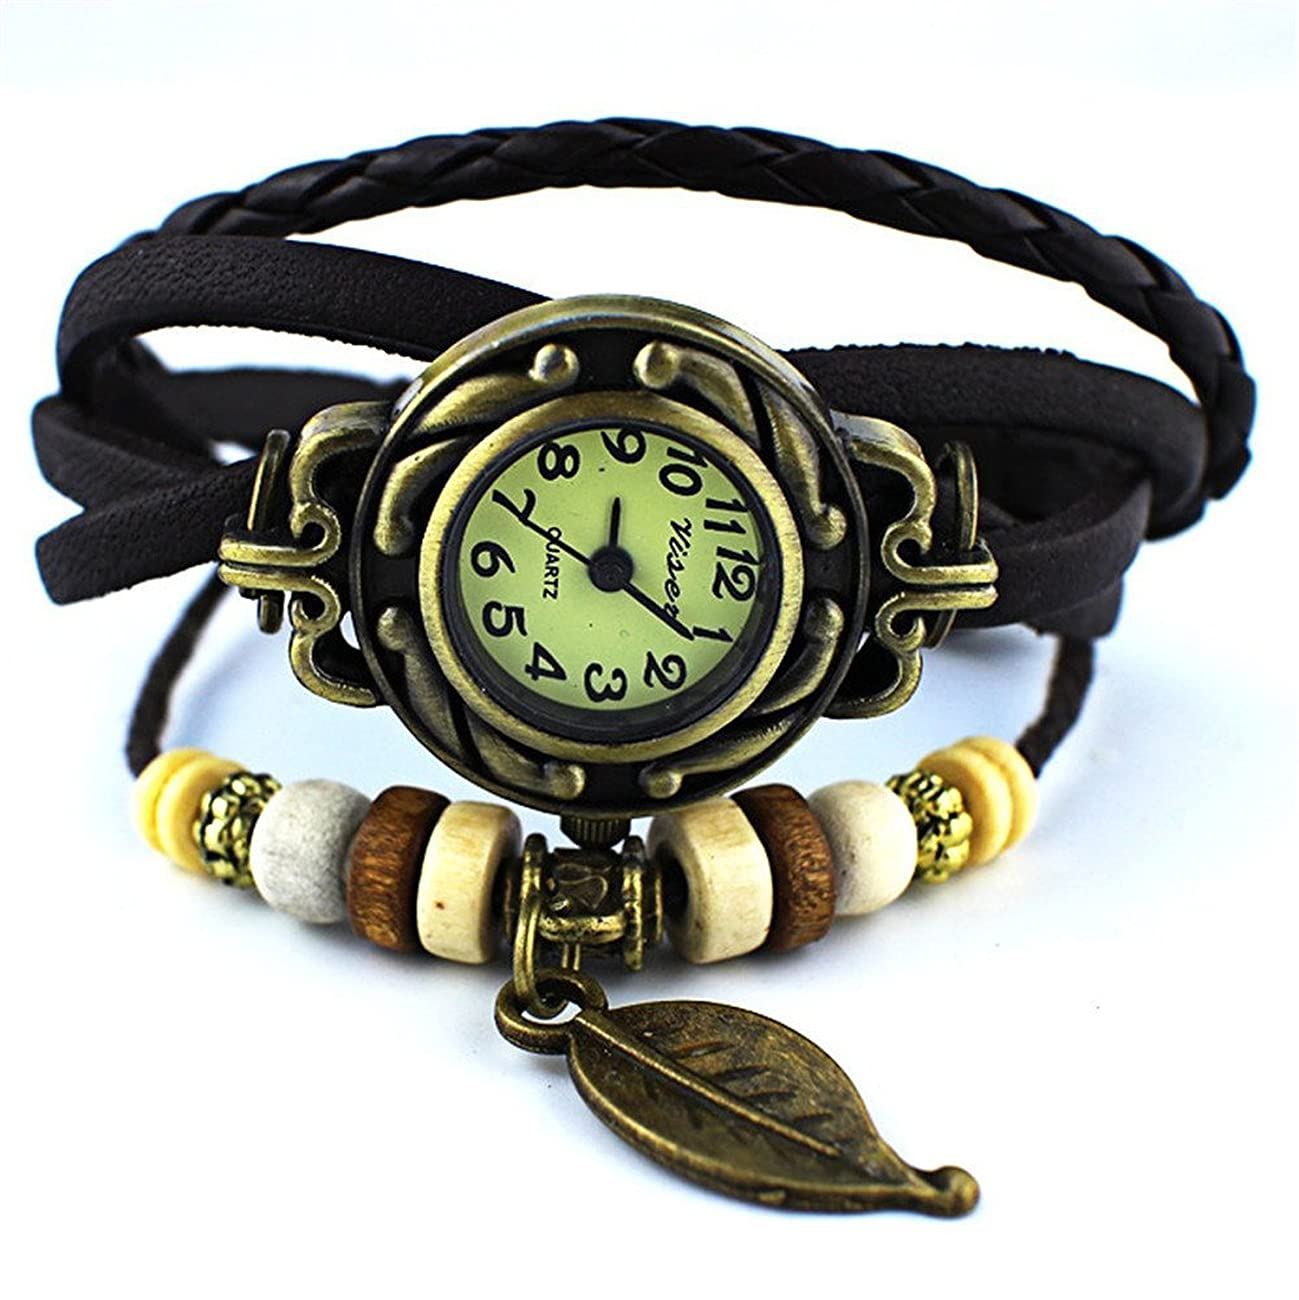 Yunan Pack of 6 Women's Watches Vintage Wrap Around Bead Leaf Bracelet Quartz Wholesale Set 2